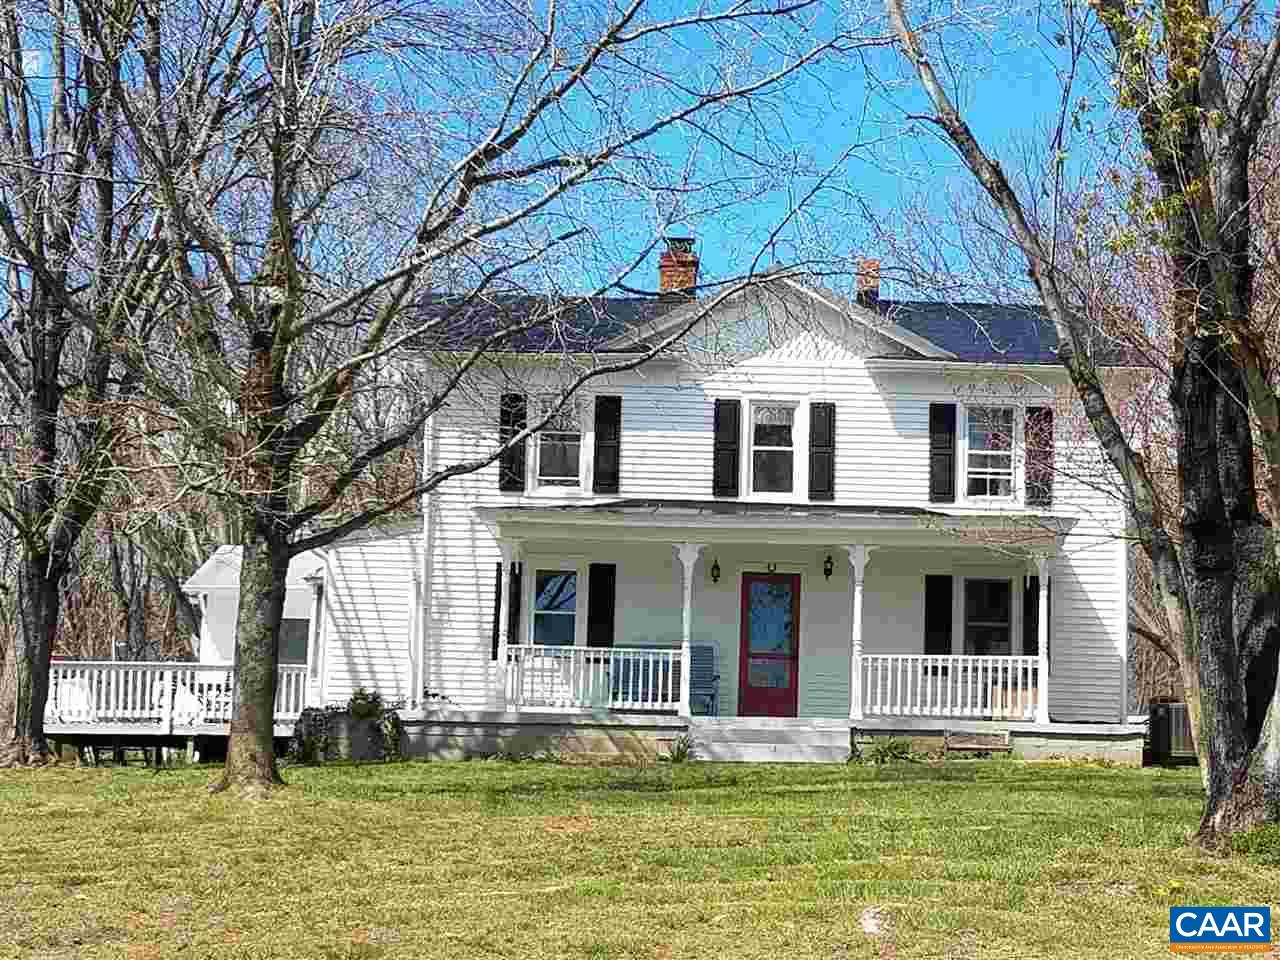 home for sale , MLS #559828, 9443 Dyke Rd